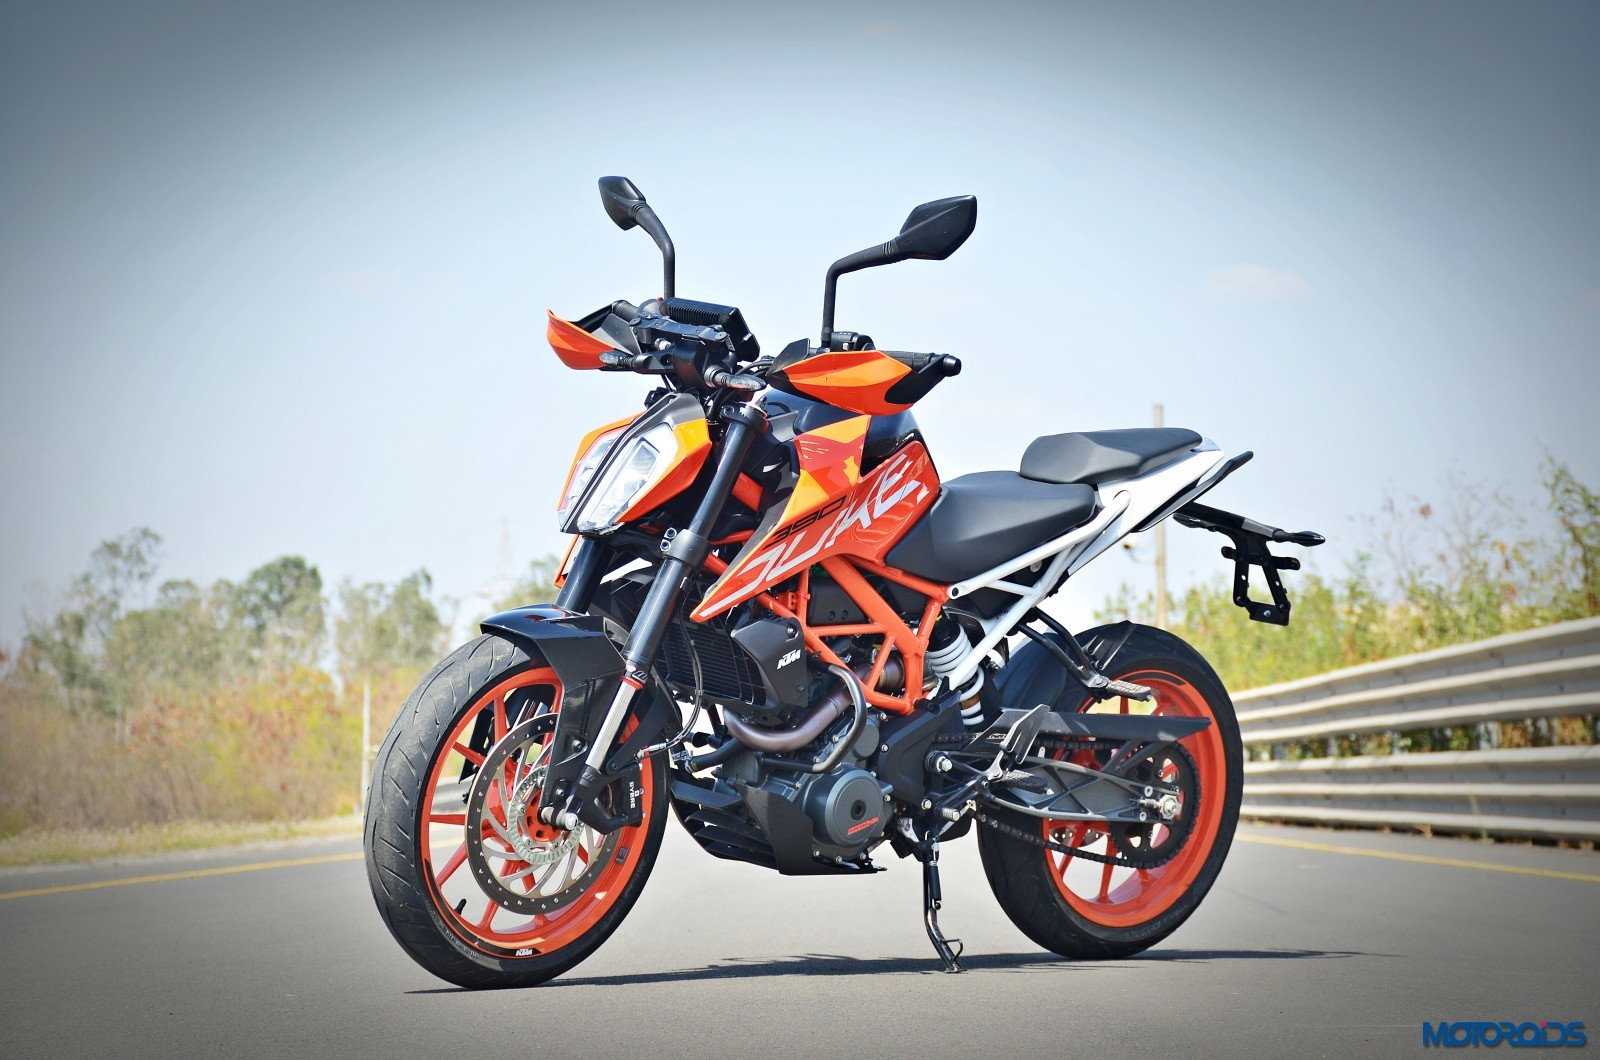 2017 ktm 390 duke recalled over led headlight issue motoroids. Black Bedroom Furniture Sets. Home Design Ideas